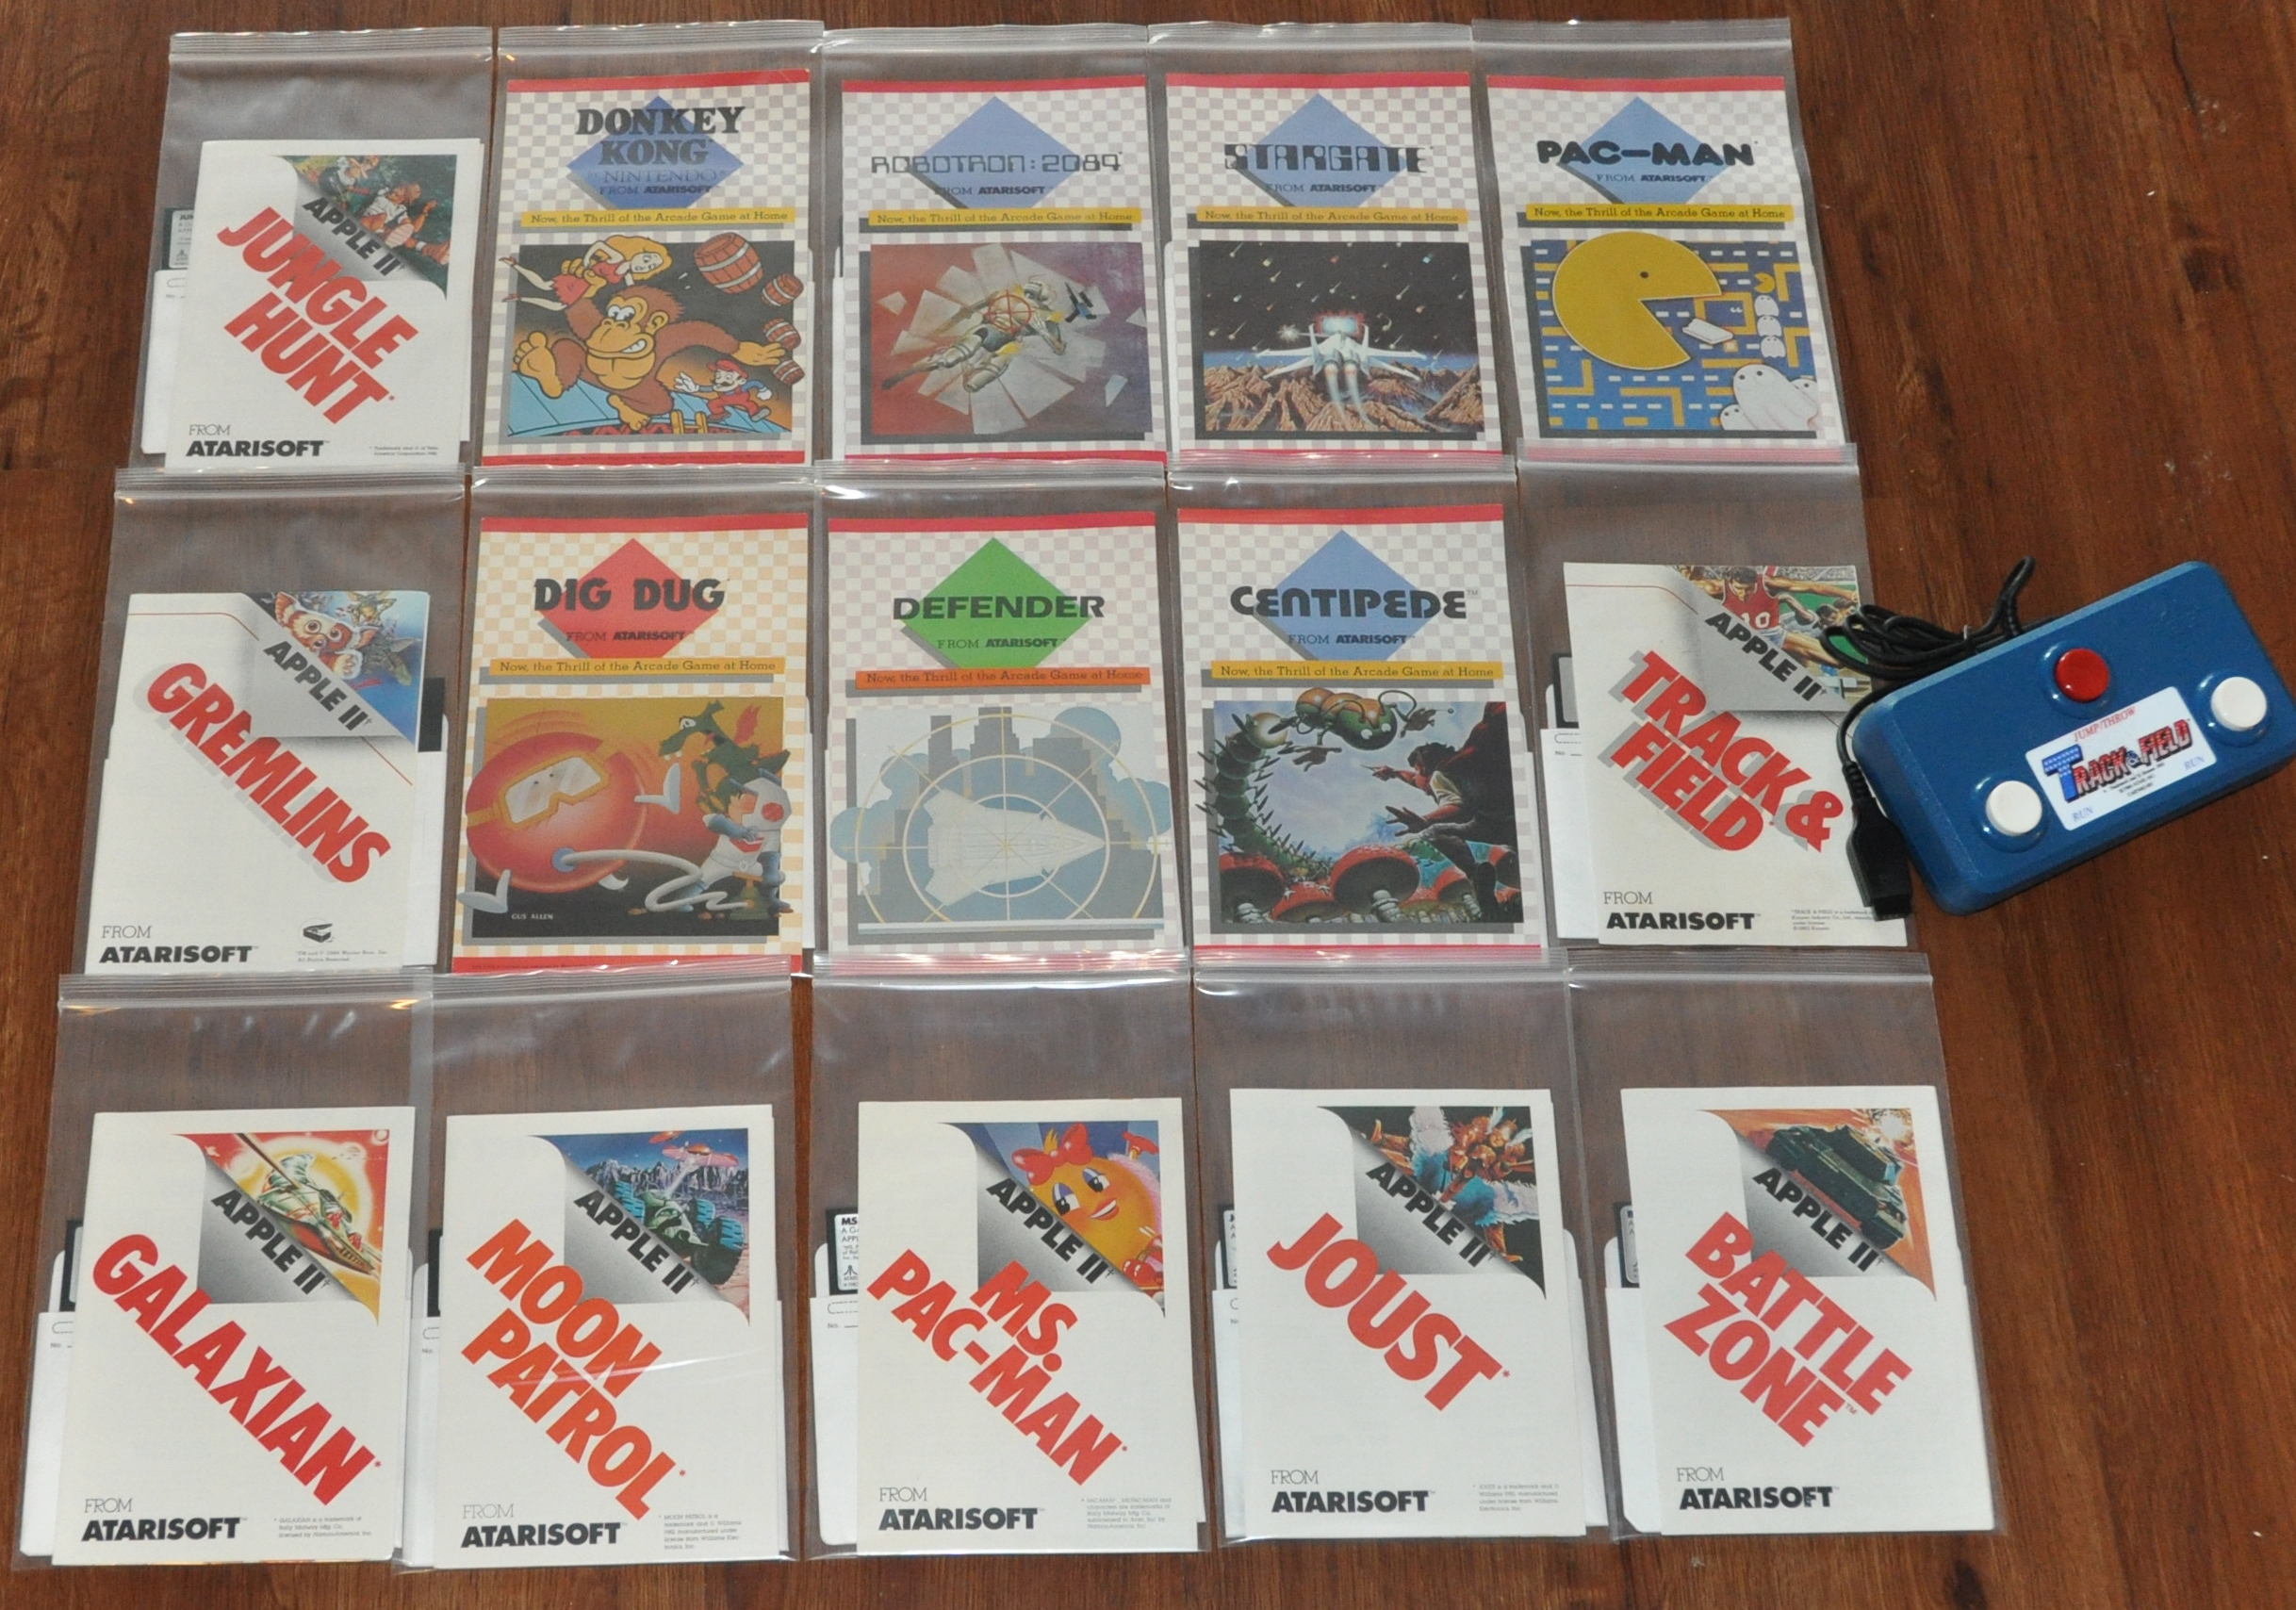 Atari%20Collection%20Oldskol.jpg